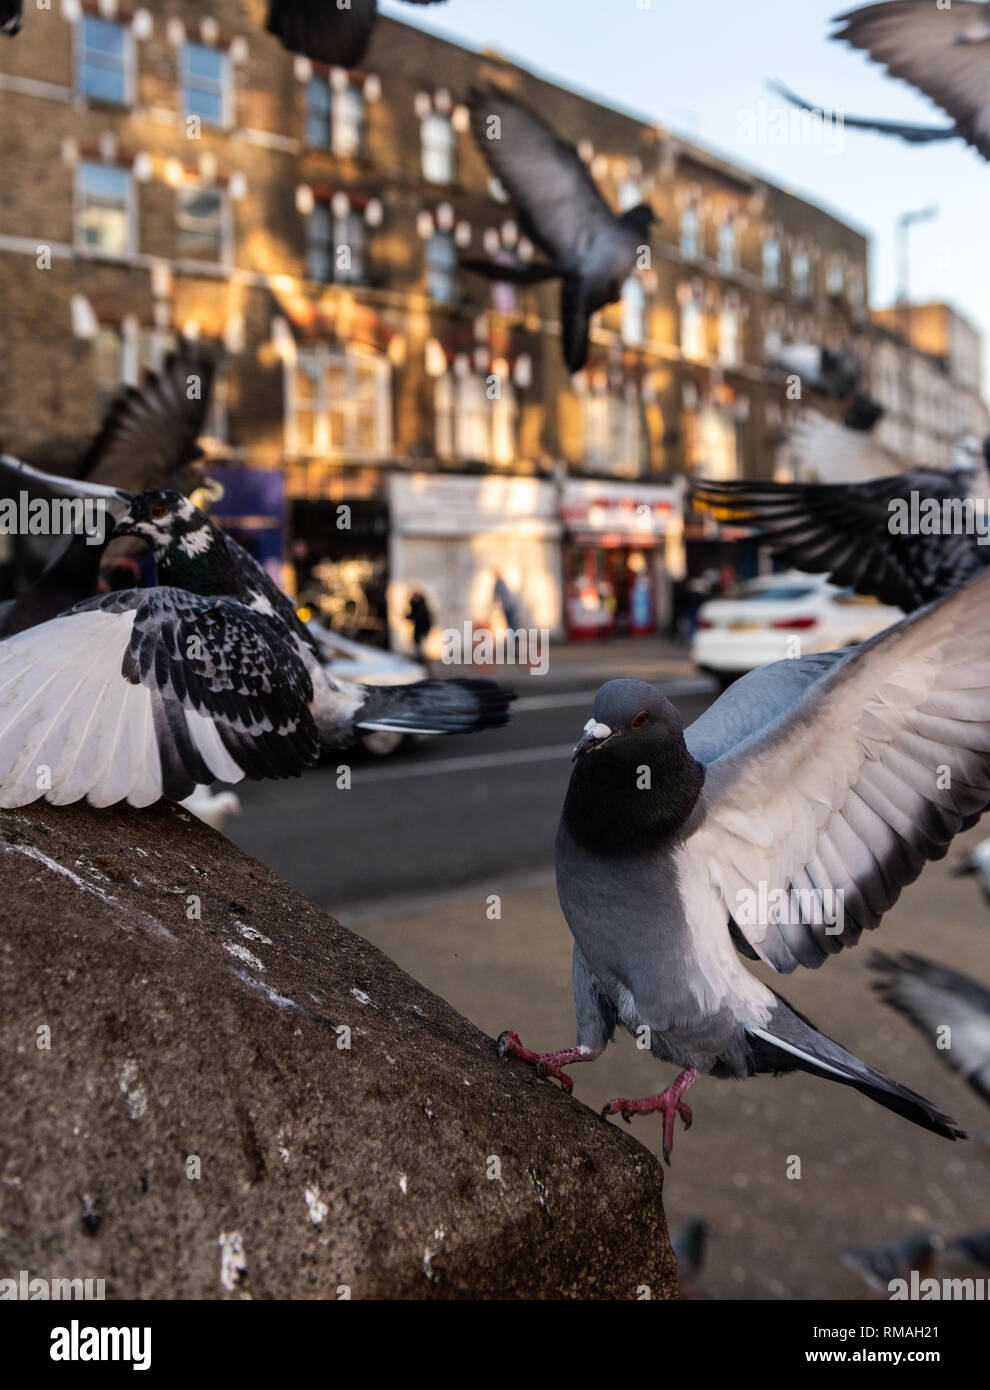 Enjoy the many sights at Camden Market on a bright sunny day in London England - Stock Image